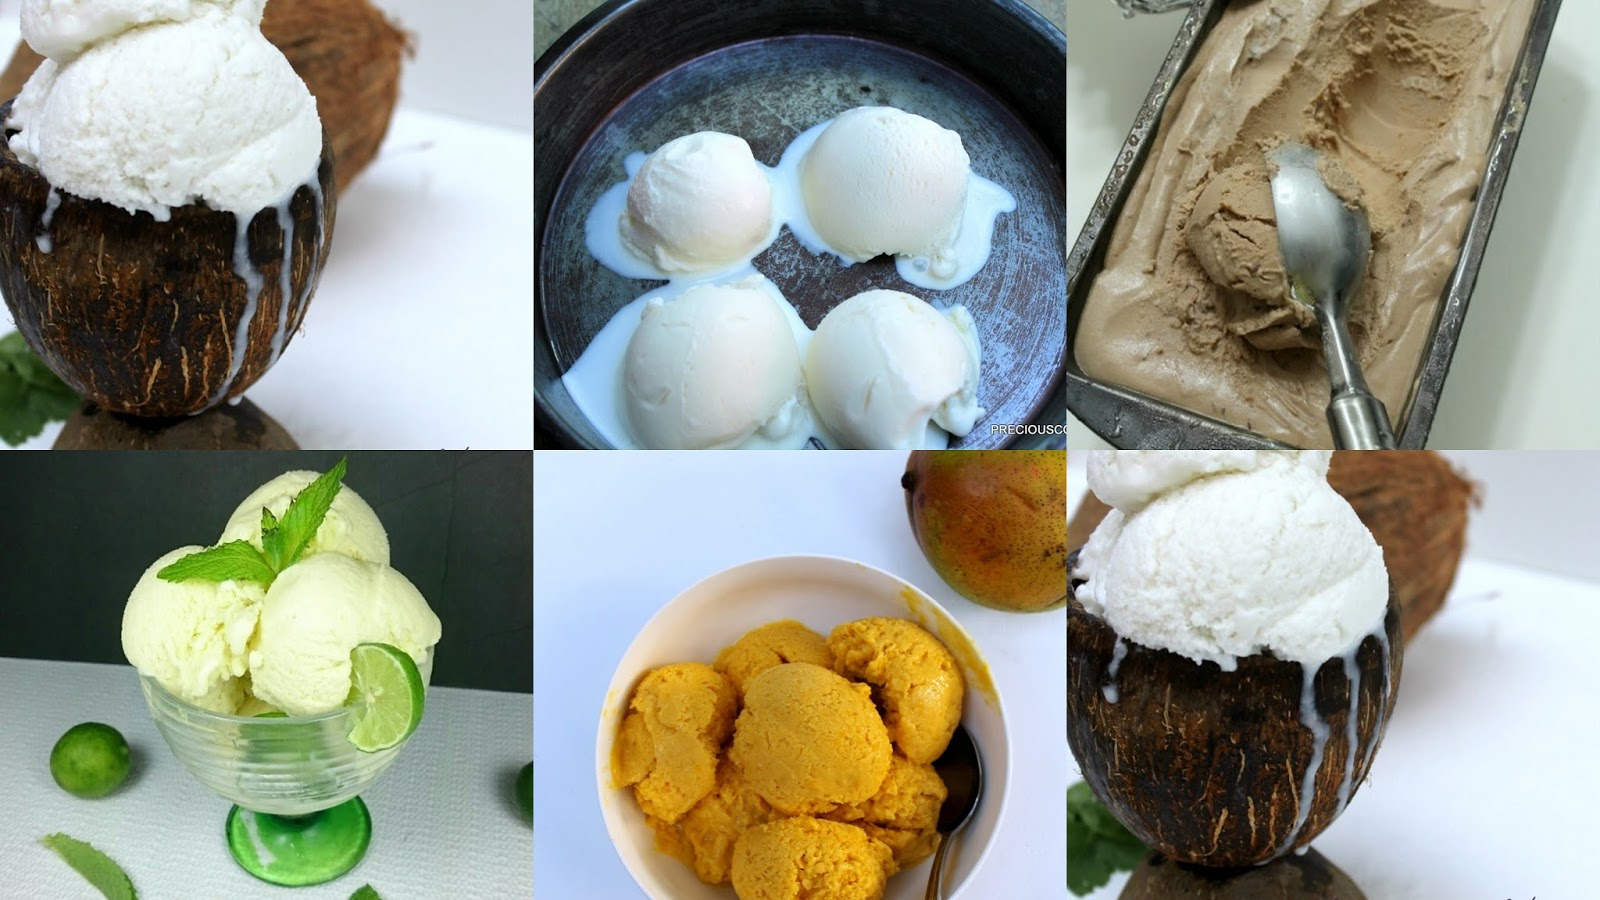 5 Epic Ice Cream Recipes by Precious Nkeih